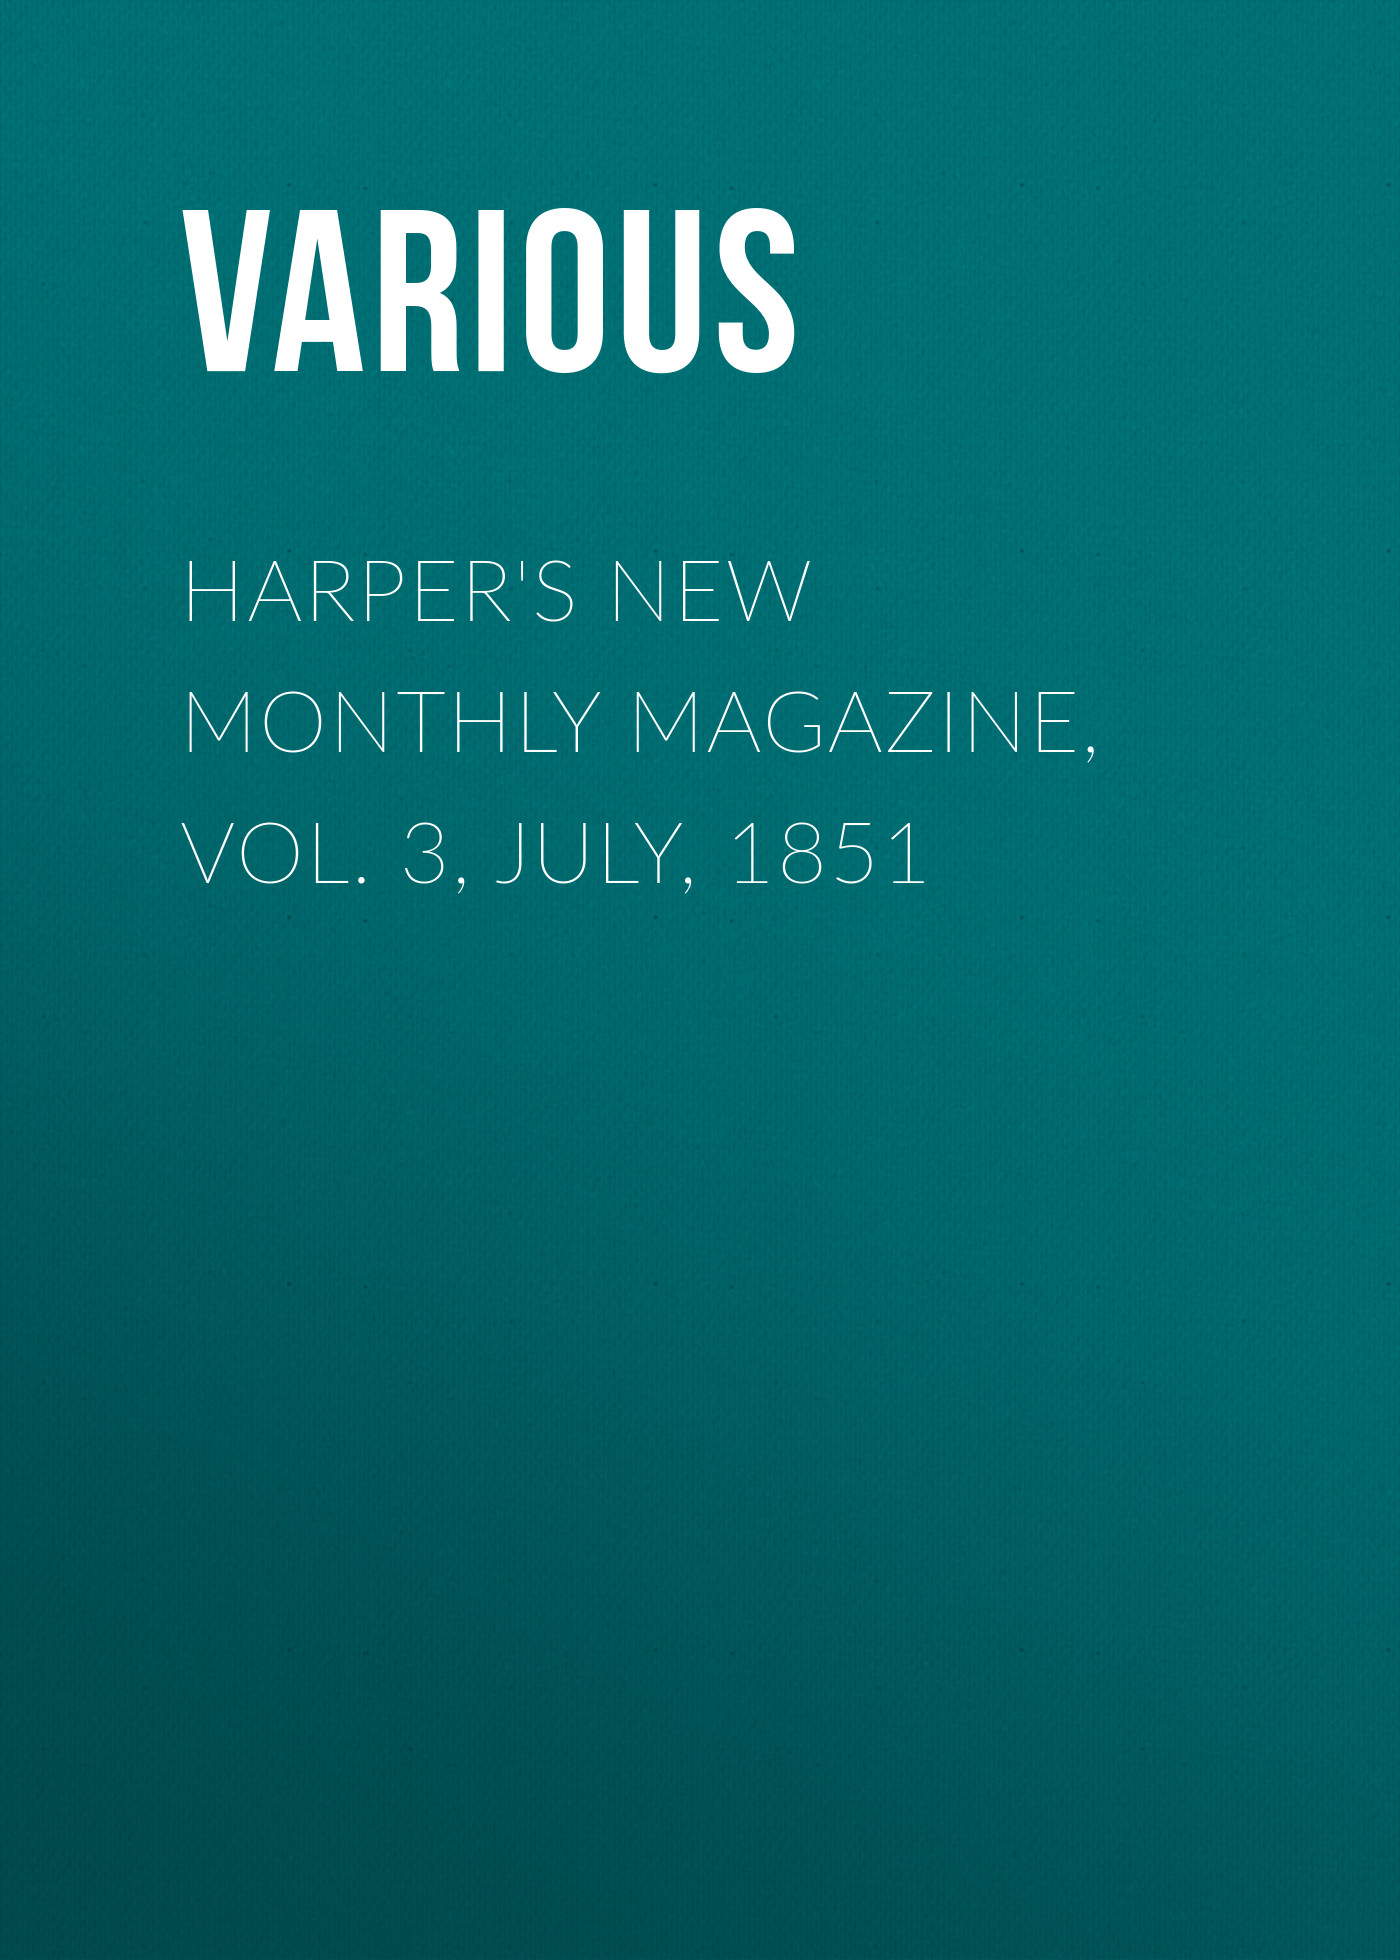 Harper\'s New Monthly Magazine, Vol. 3, July, 1851 ( Various  )